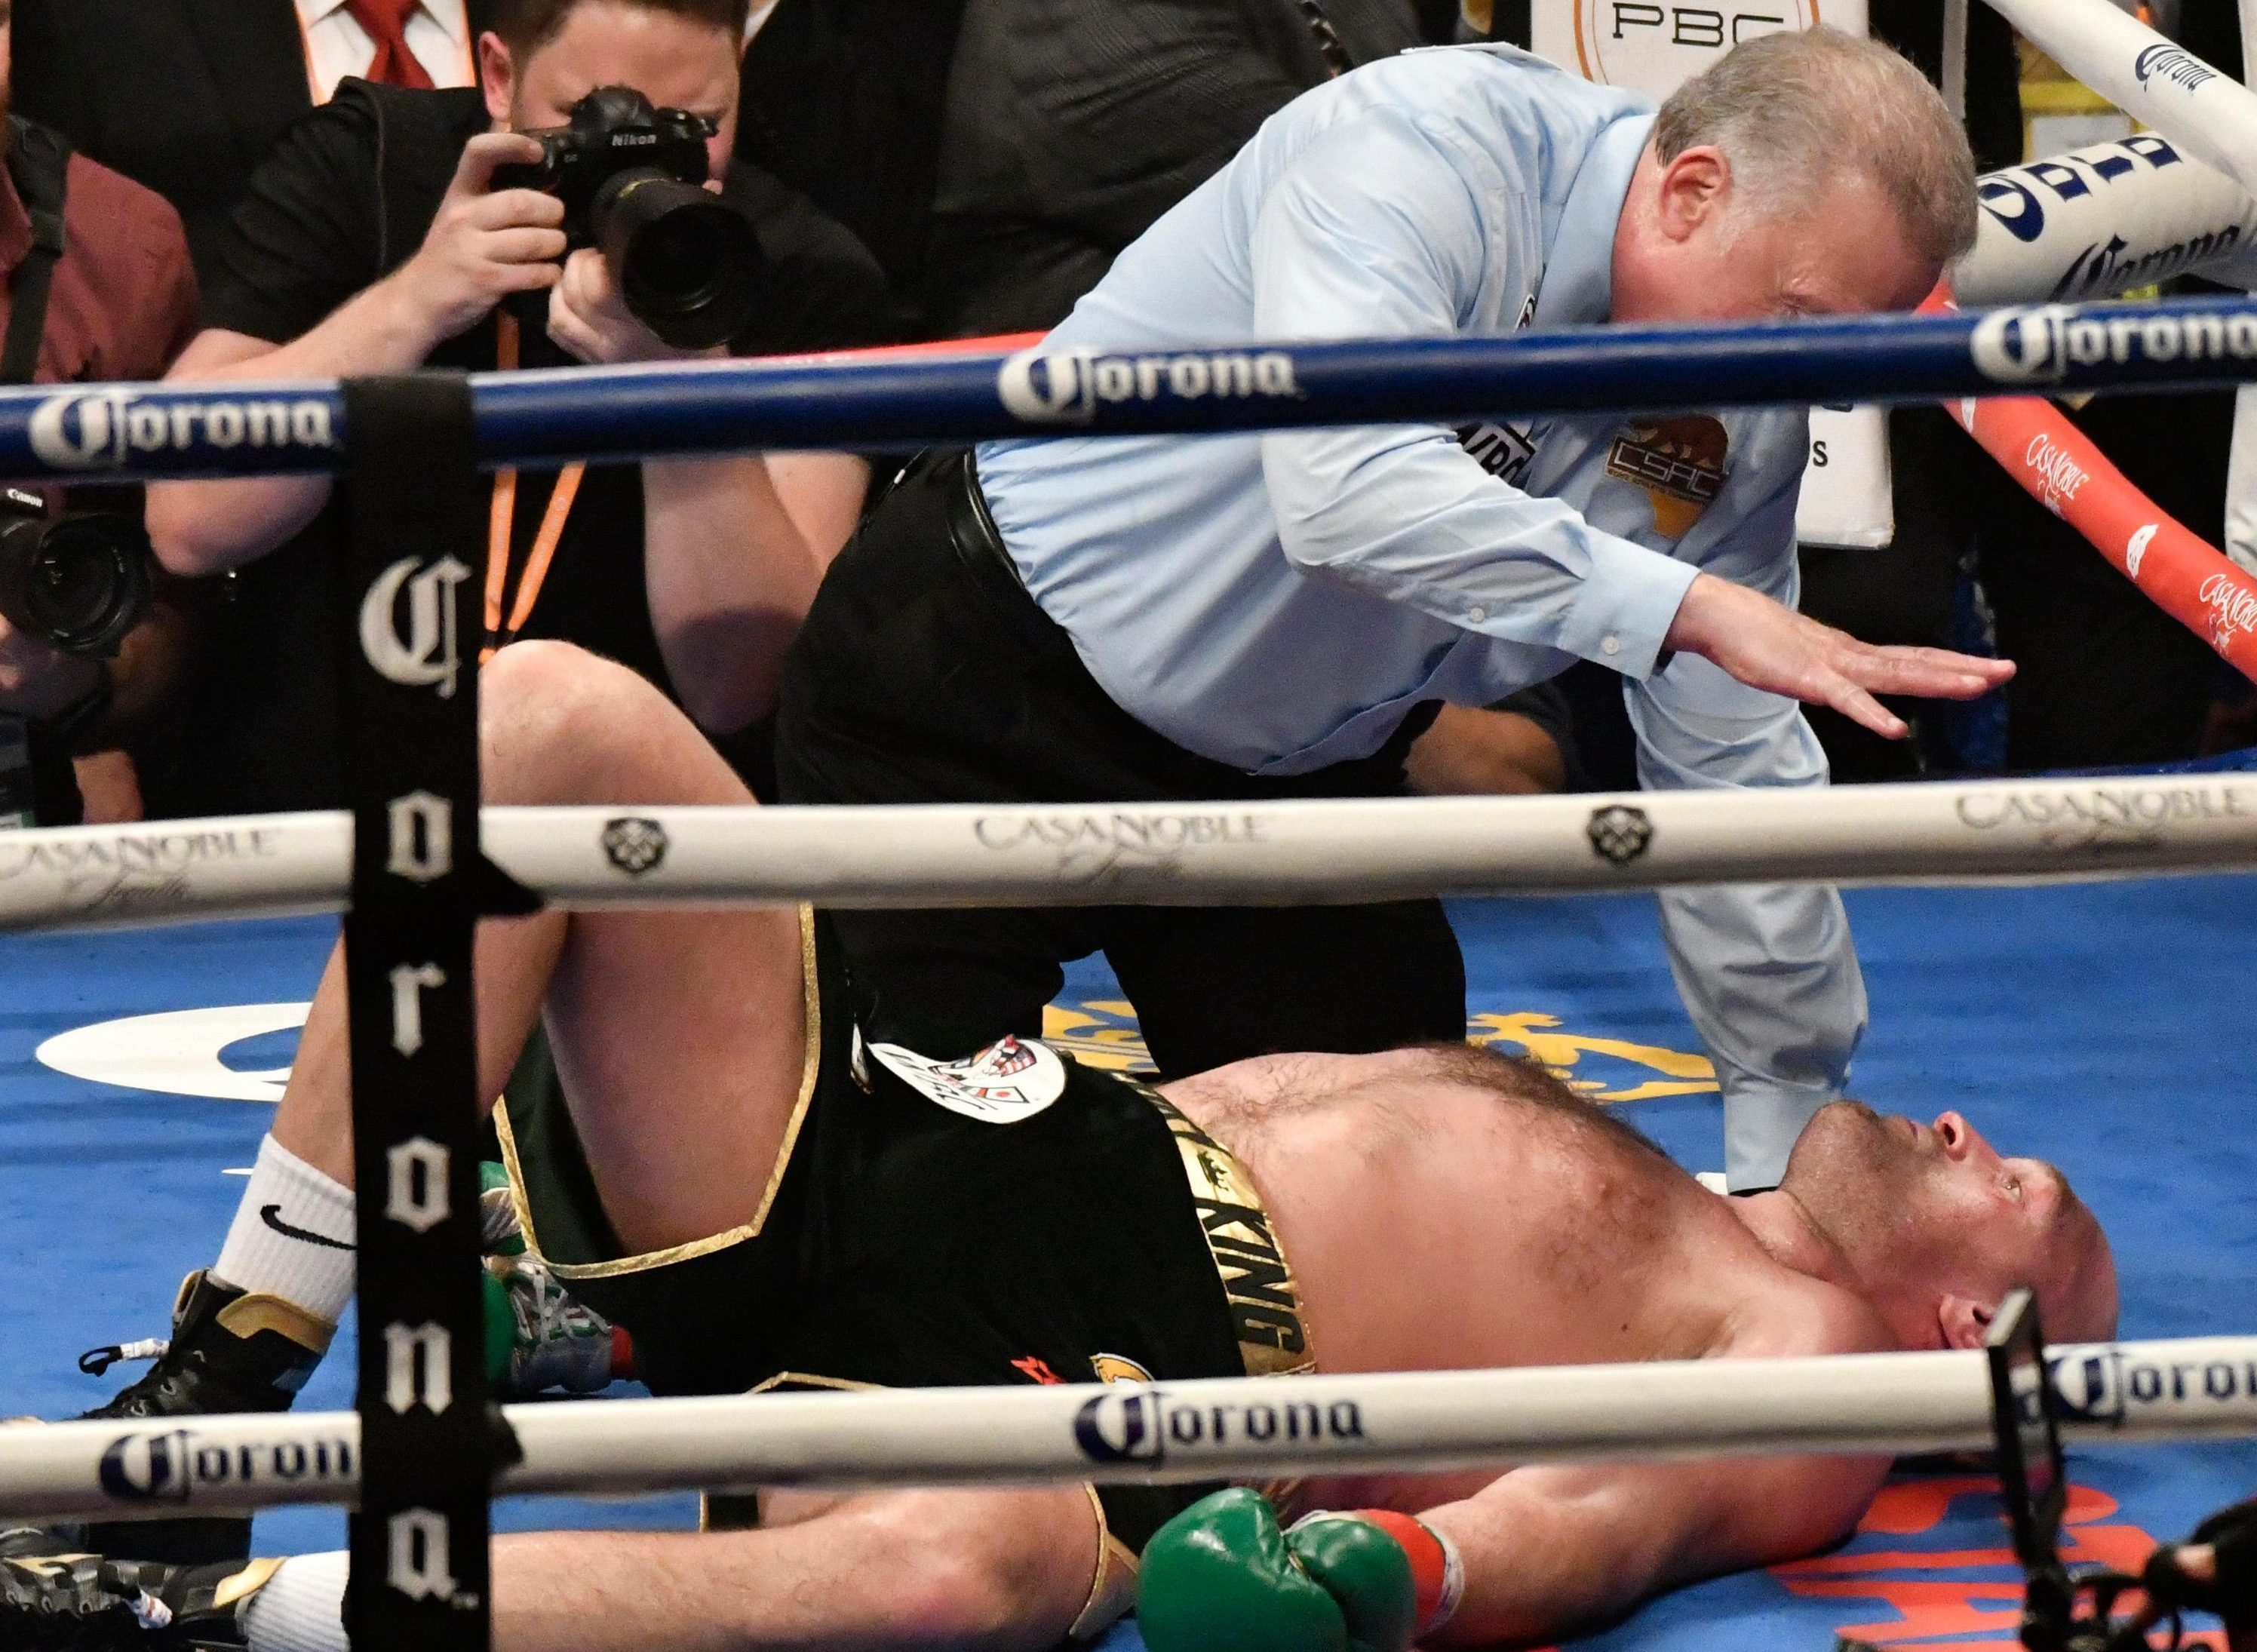 Deontay Wilder referee Jack Reiss defends Tyson Fury ten count and blast 'knuckleheads' claiming it was slow